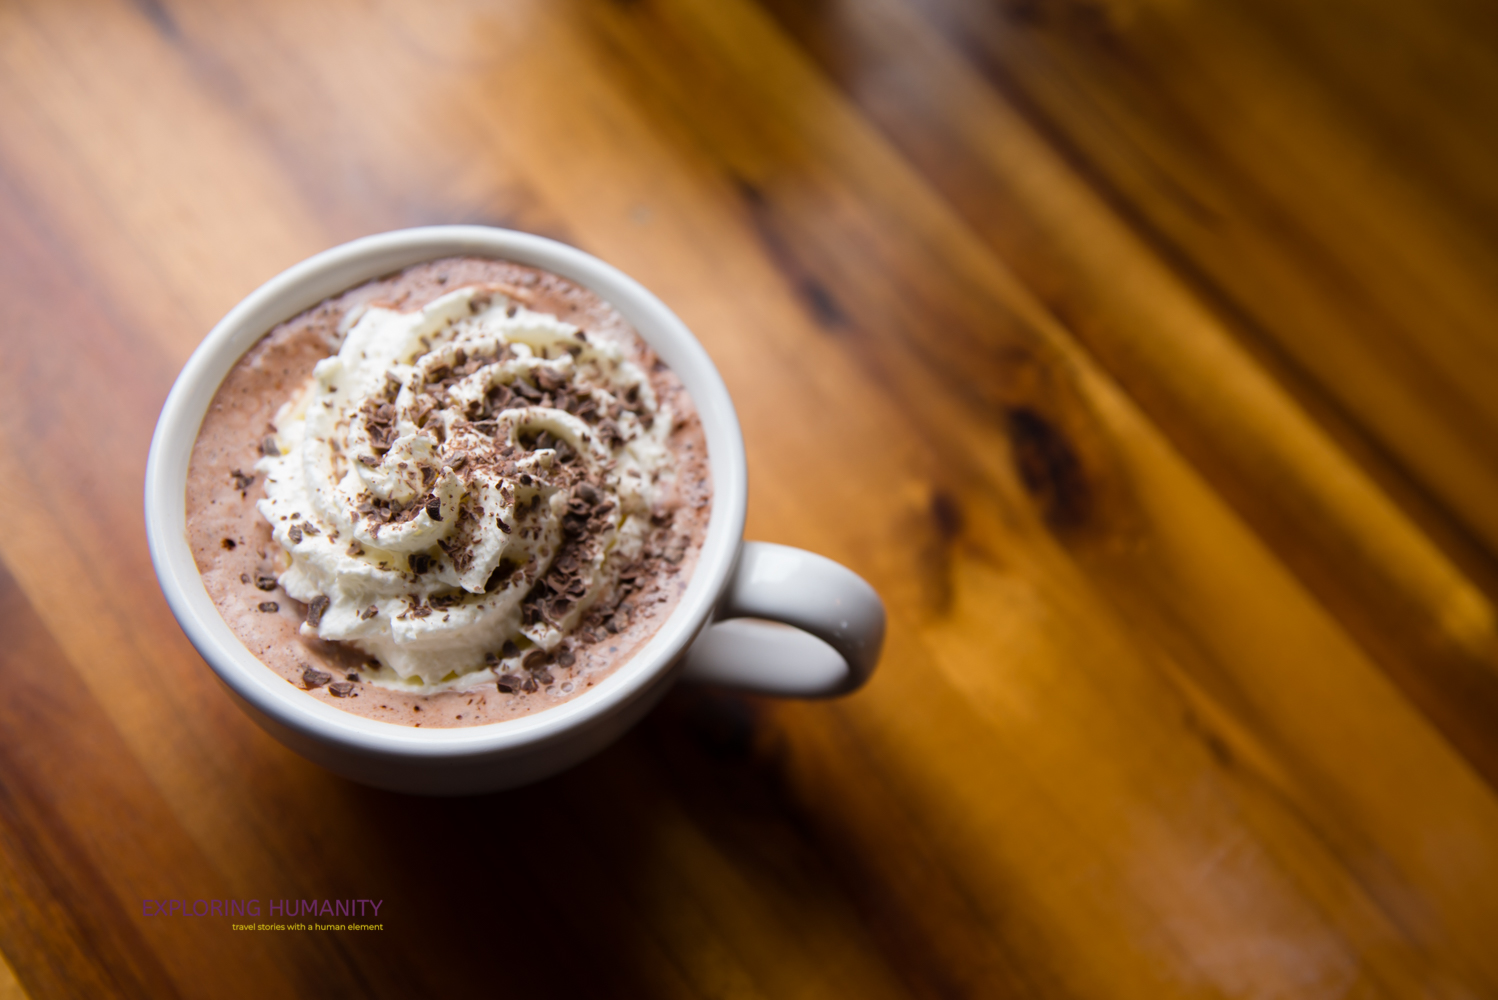 I ordered a hazelnut hot chocolate with whipped cream from Hidden River Roasters.